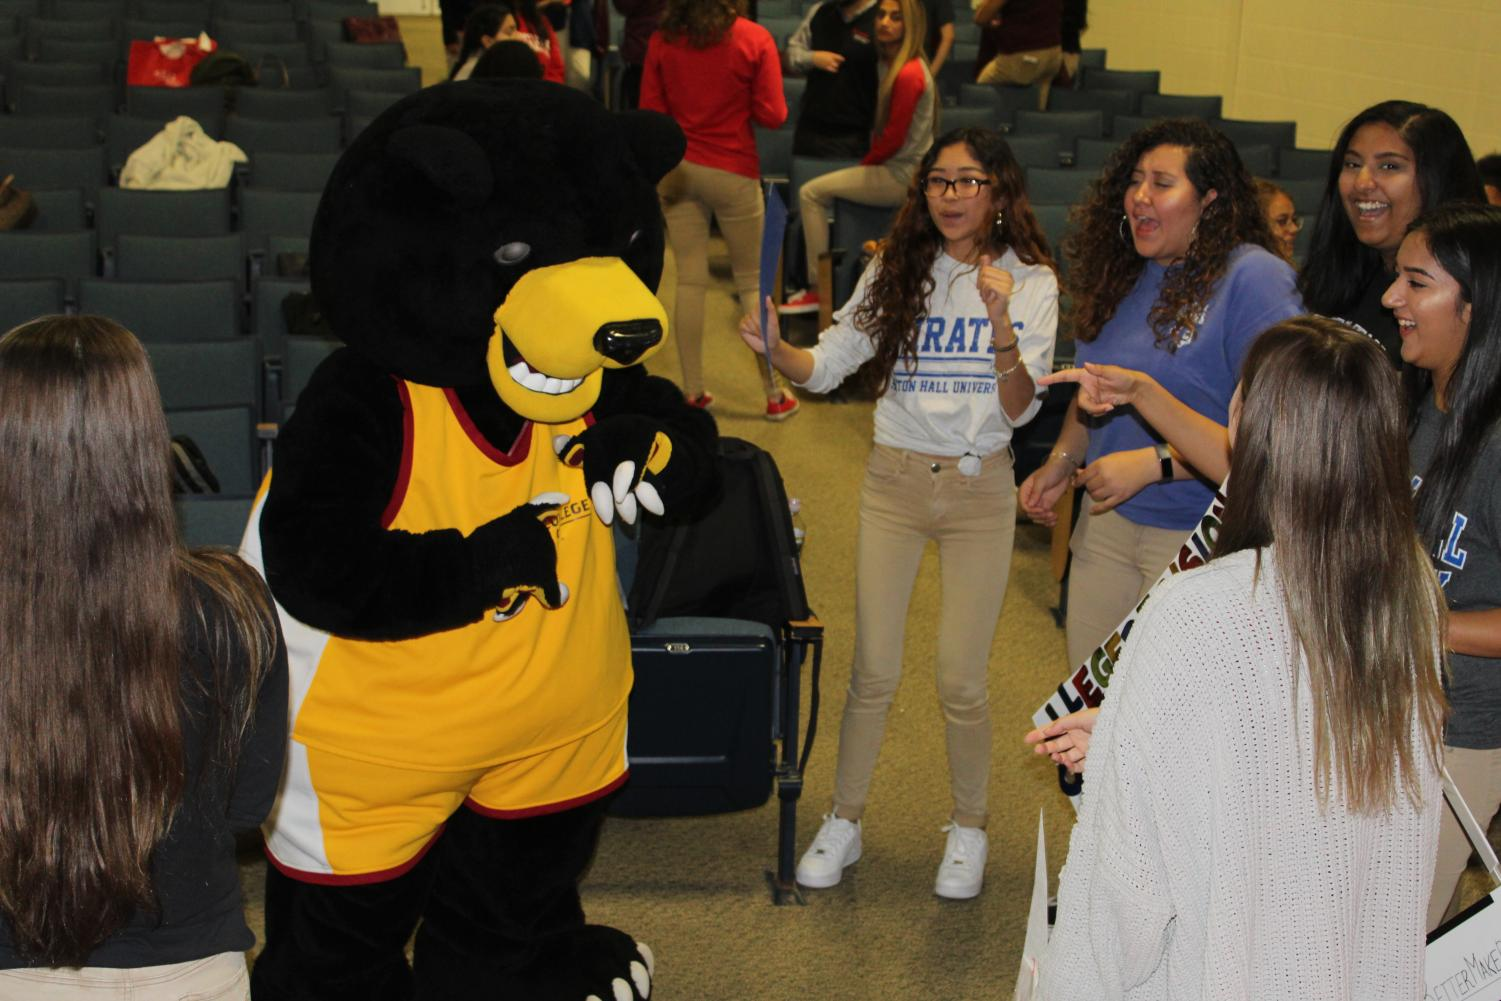 Fairfield%27s+mascot+dancing